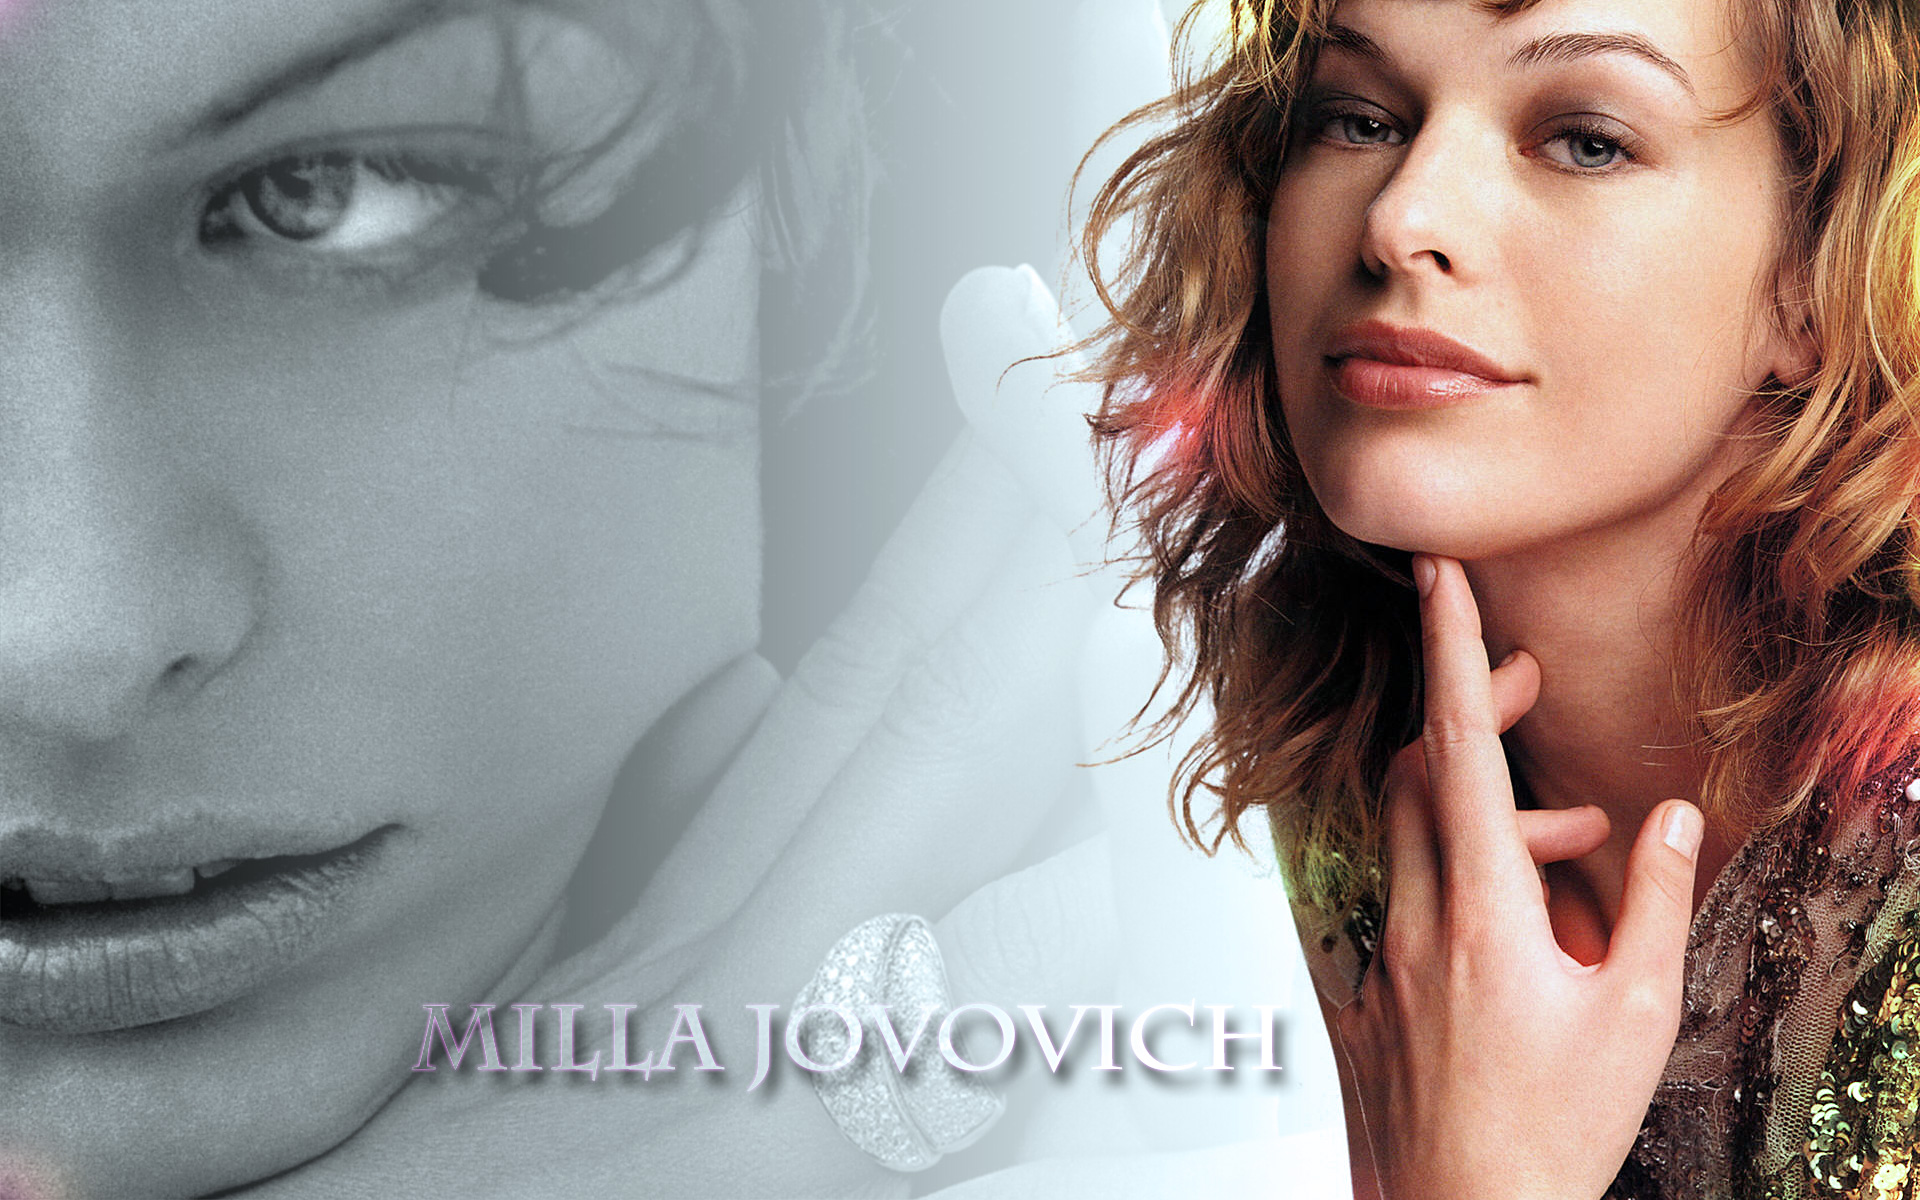 Cool Milla Jovovich Wallpaper